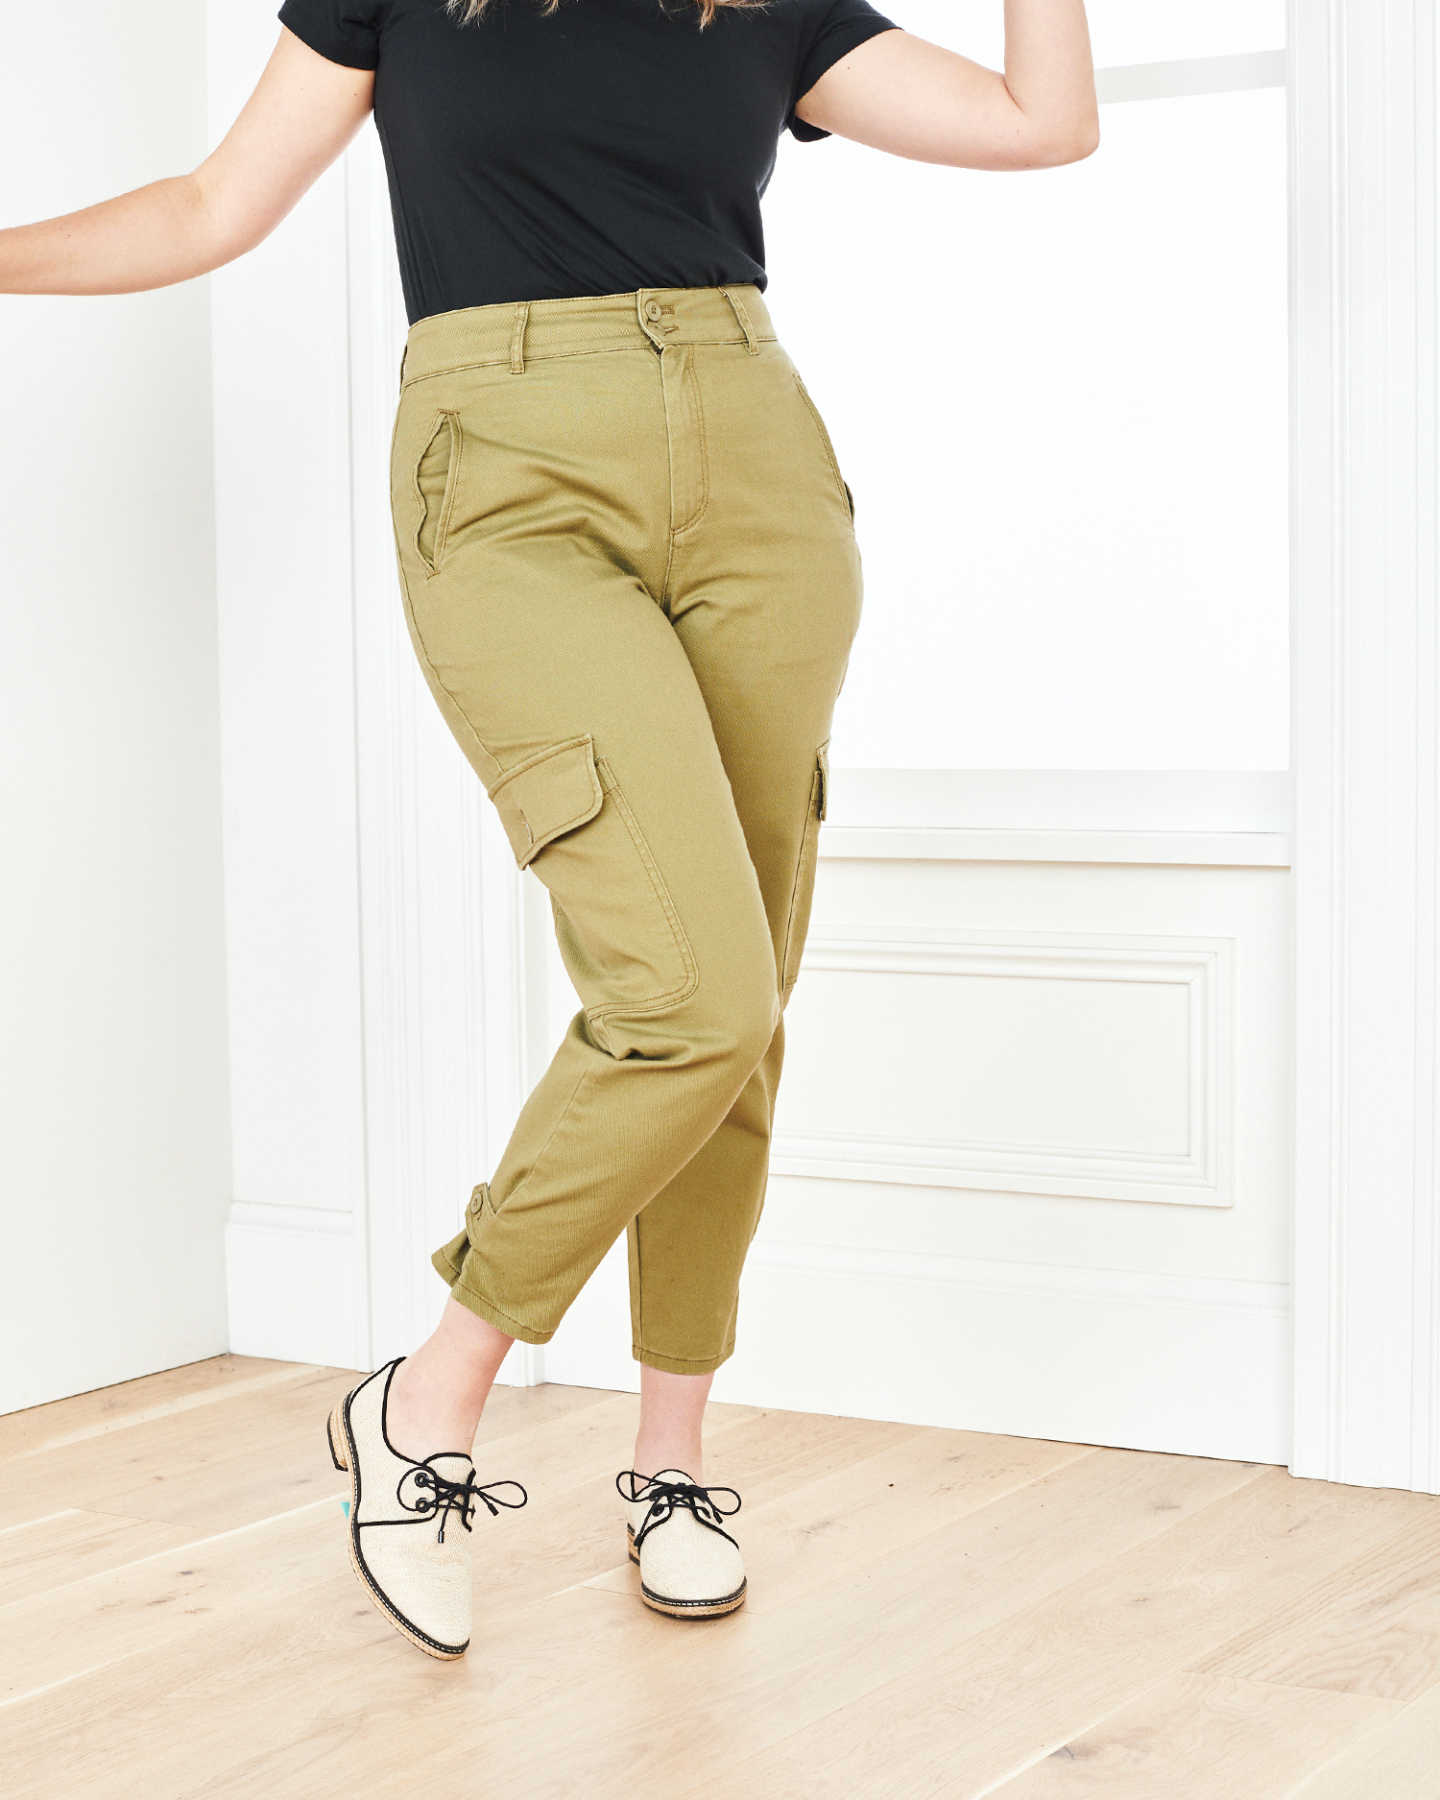 Stretch Cotton Twill Cargo Pant - Olive - 8